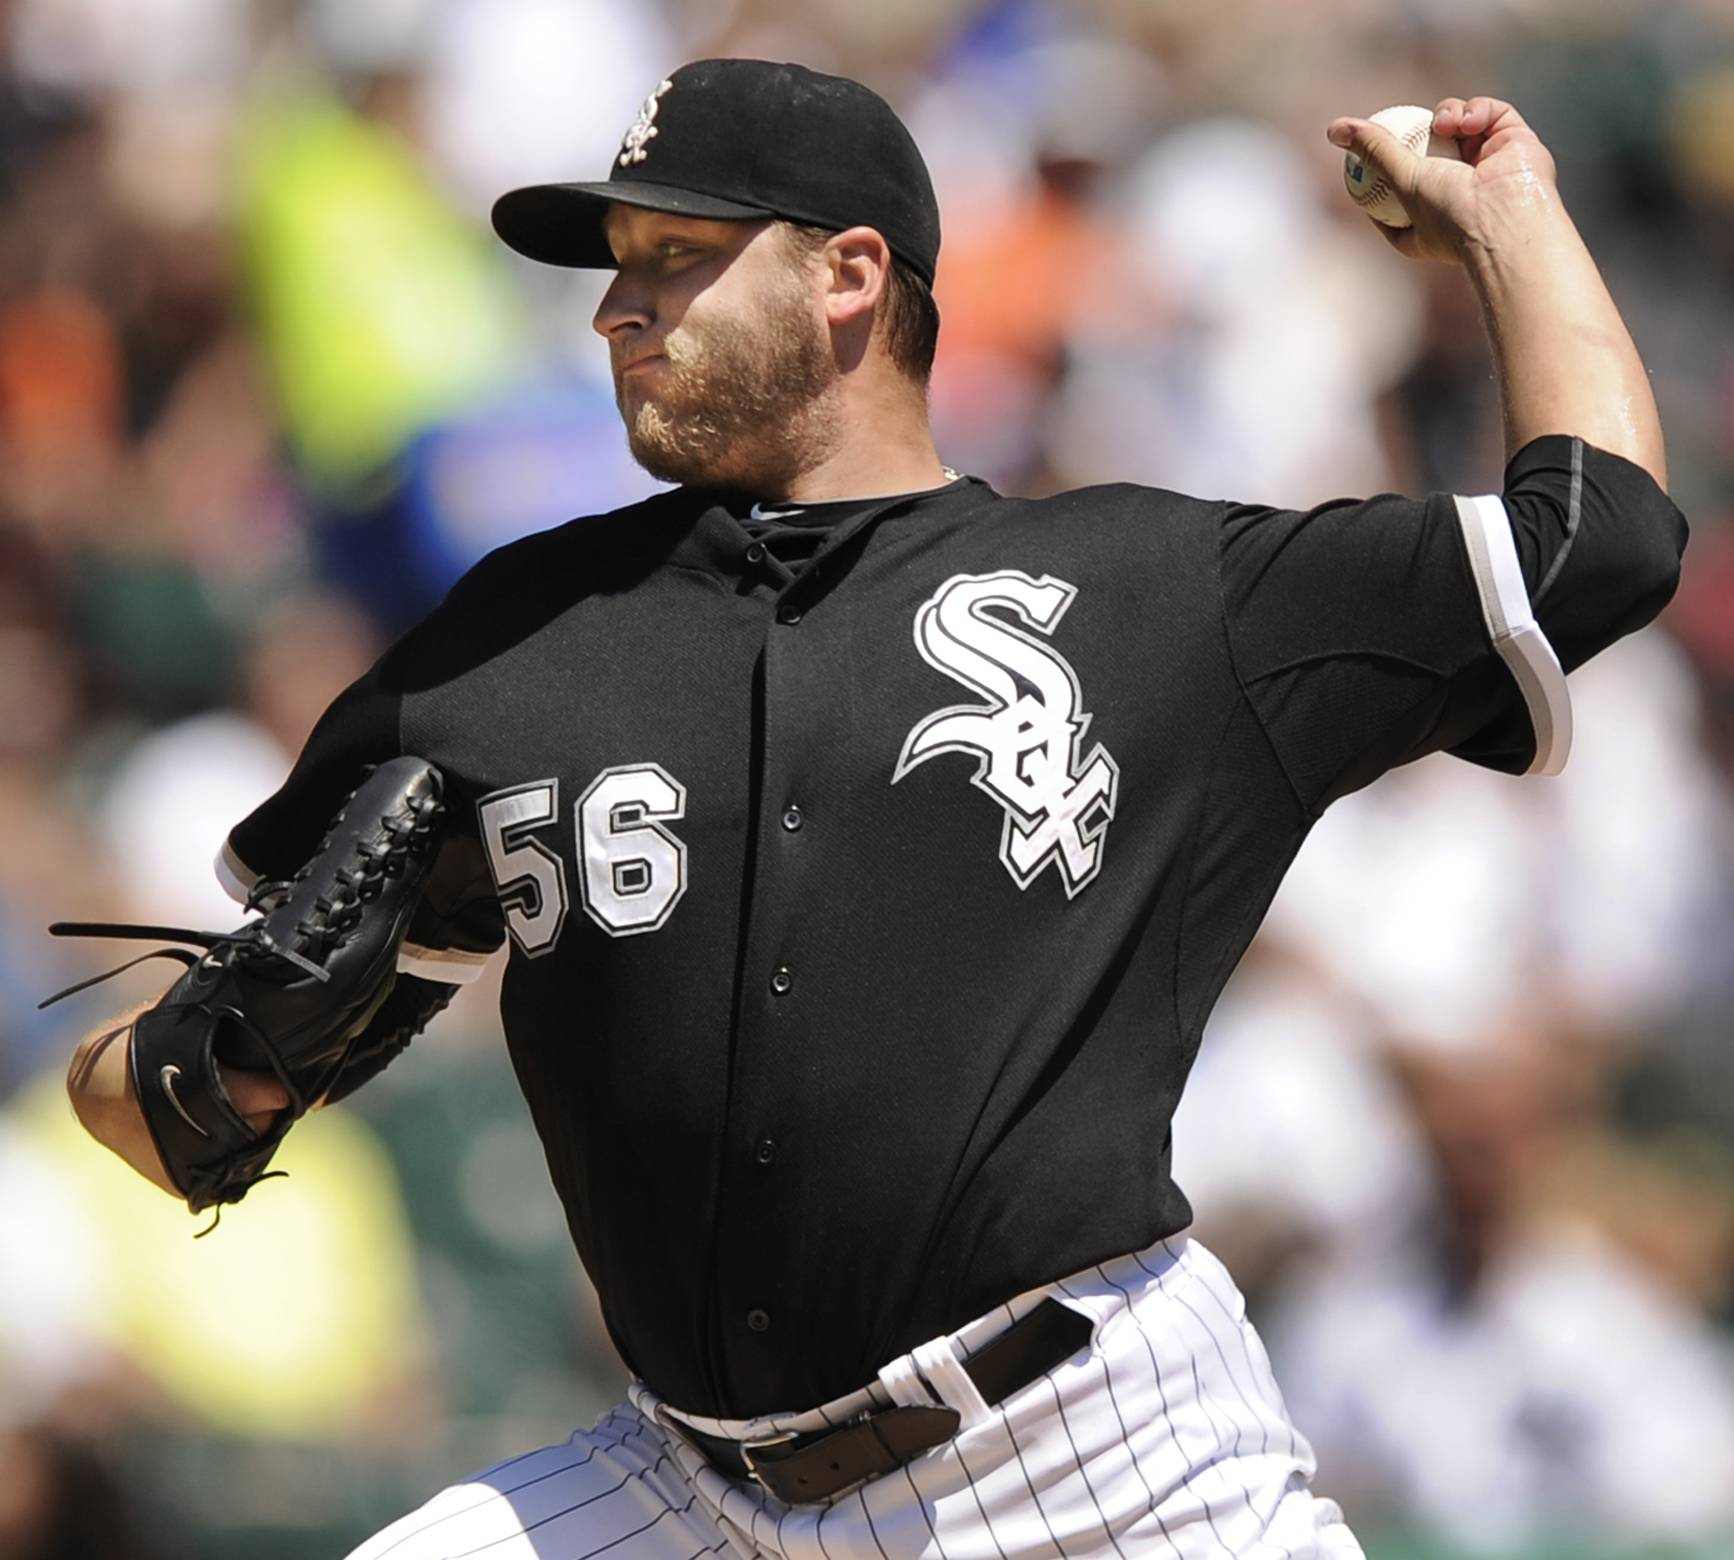 Chicago White Sox starter Mark Buehrle delivers a pitch Sunday against the Boston Red Sox during the first inning in Chicago.